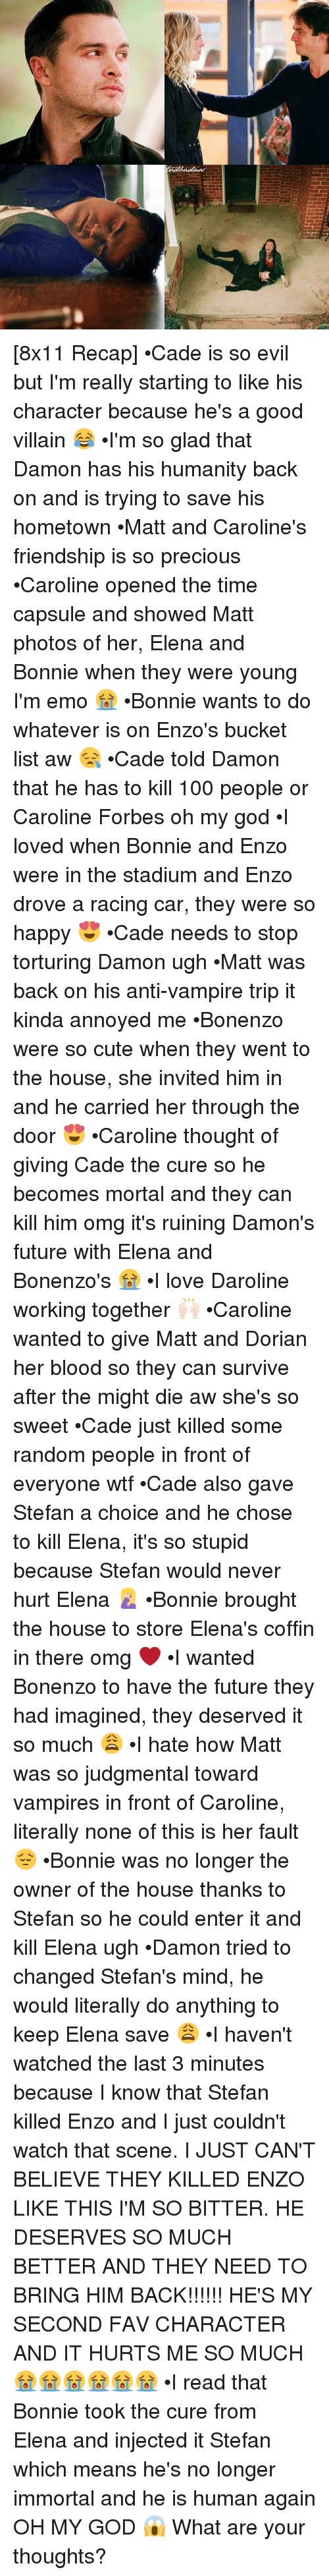 torturous: K [8x11 Recap] •Cade is so evil but I'm really starting to like his character because he's a good villain 😂 •I'm so glad that Damon has his humanity back on and is trying to save his hometown •Matt and Caroline's friendship is so precious •Caroline opened the time capsule and showed Matt photos of her, Elena and Bonnie when they were young I'm emo 😭 •Bonnie wants to do whatever is on Enzo's bucket list aw 😪 •Cade told Damon that he has to kill 100 people or Caroline Forbes oh my god •I loved when Bonnie and Enzo were in the stadium and Enzo drove a racing car, they were so happy 😍 •Cade needs to stop torturing Damon ugh •Matt was back on his anti-vampire trip it kinda annoyed me •Bonenzo were so cute when they went to the house, she invited him in and he carried her through the door 😍 •Caroline thought of giving Cade the cure so he becomes mortal and they can kill him omg it's ruining Damon's future with Elena and Bonenzo's 😭 •I love Daroline working together 🙌🏻 •Caroline wanted to give Matt and Dorian her blood so they can survive after the might die aw she's so sweet •Cade just killed some random people in front of everyone wtf •Cade also gave Stefan a choice and he chose to kill Elena, it's so stupid because Stefan would never hurt Elena 🤦🏼‍♀️ •Bonnie brought the house to store Elena's coffin in there omg ❤ •I wanted Bonenzo to have the future they had imagined, they deserved it so much 😩 •I hate how Matt was so judgmental toward vampires in front of Caroline, literally none of this is her fault 😔 •Bonnie was no longer the owner of the house thanks to Stefan so he could enter it and kill Elena ugh •Damon tried to changed Stefan's mind, he would literally do anything to keep Elena save 😩 •I haven't watched the last 3 minutes because I know that Stefan killed Enzo and I just couldn't watch that scene. I JUST CAN'T BELIEVE THEY KILLED ENZO LIKE THIS I'M SO BITTER. HE DESERVES SO MUCH BETTER AND THEY NEED TO BRING HIM BACK!!!!!! HE'S MY SECOND FAV CHARACTER AND IT HURTS ME SO MUCH 😭😭😭😭😭😭 •I read that Bonnie took the cure from Elena and injected it Stefan which means he's no longer immortal and he is human again OH MY GOD 😱 What are your thoughts?